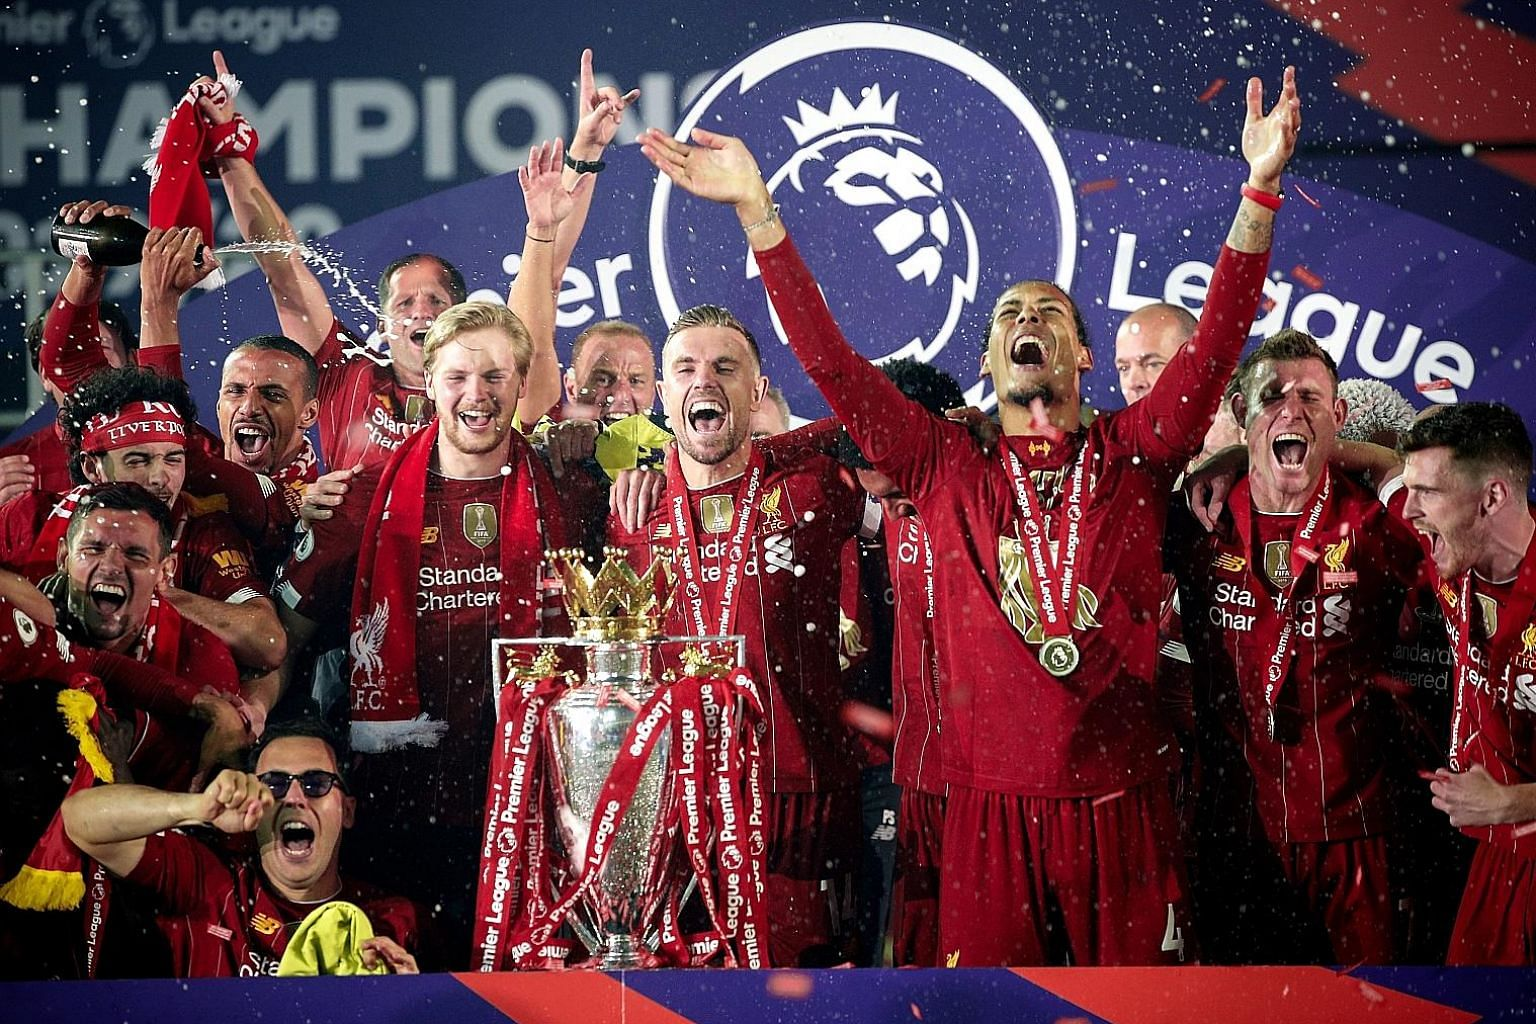 Skipper Jordan Henderson (centre) and teammates cheering with the Premier League trophy after the presentation at Anfield on Wednesday. Top: The Premier League trophy is manager Jurgen Klopp's fourth with Liverpool in a year after the Uefa Super Cup,